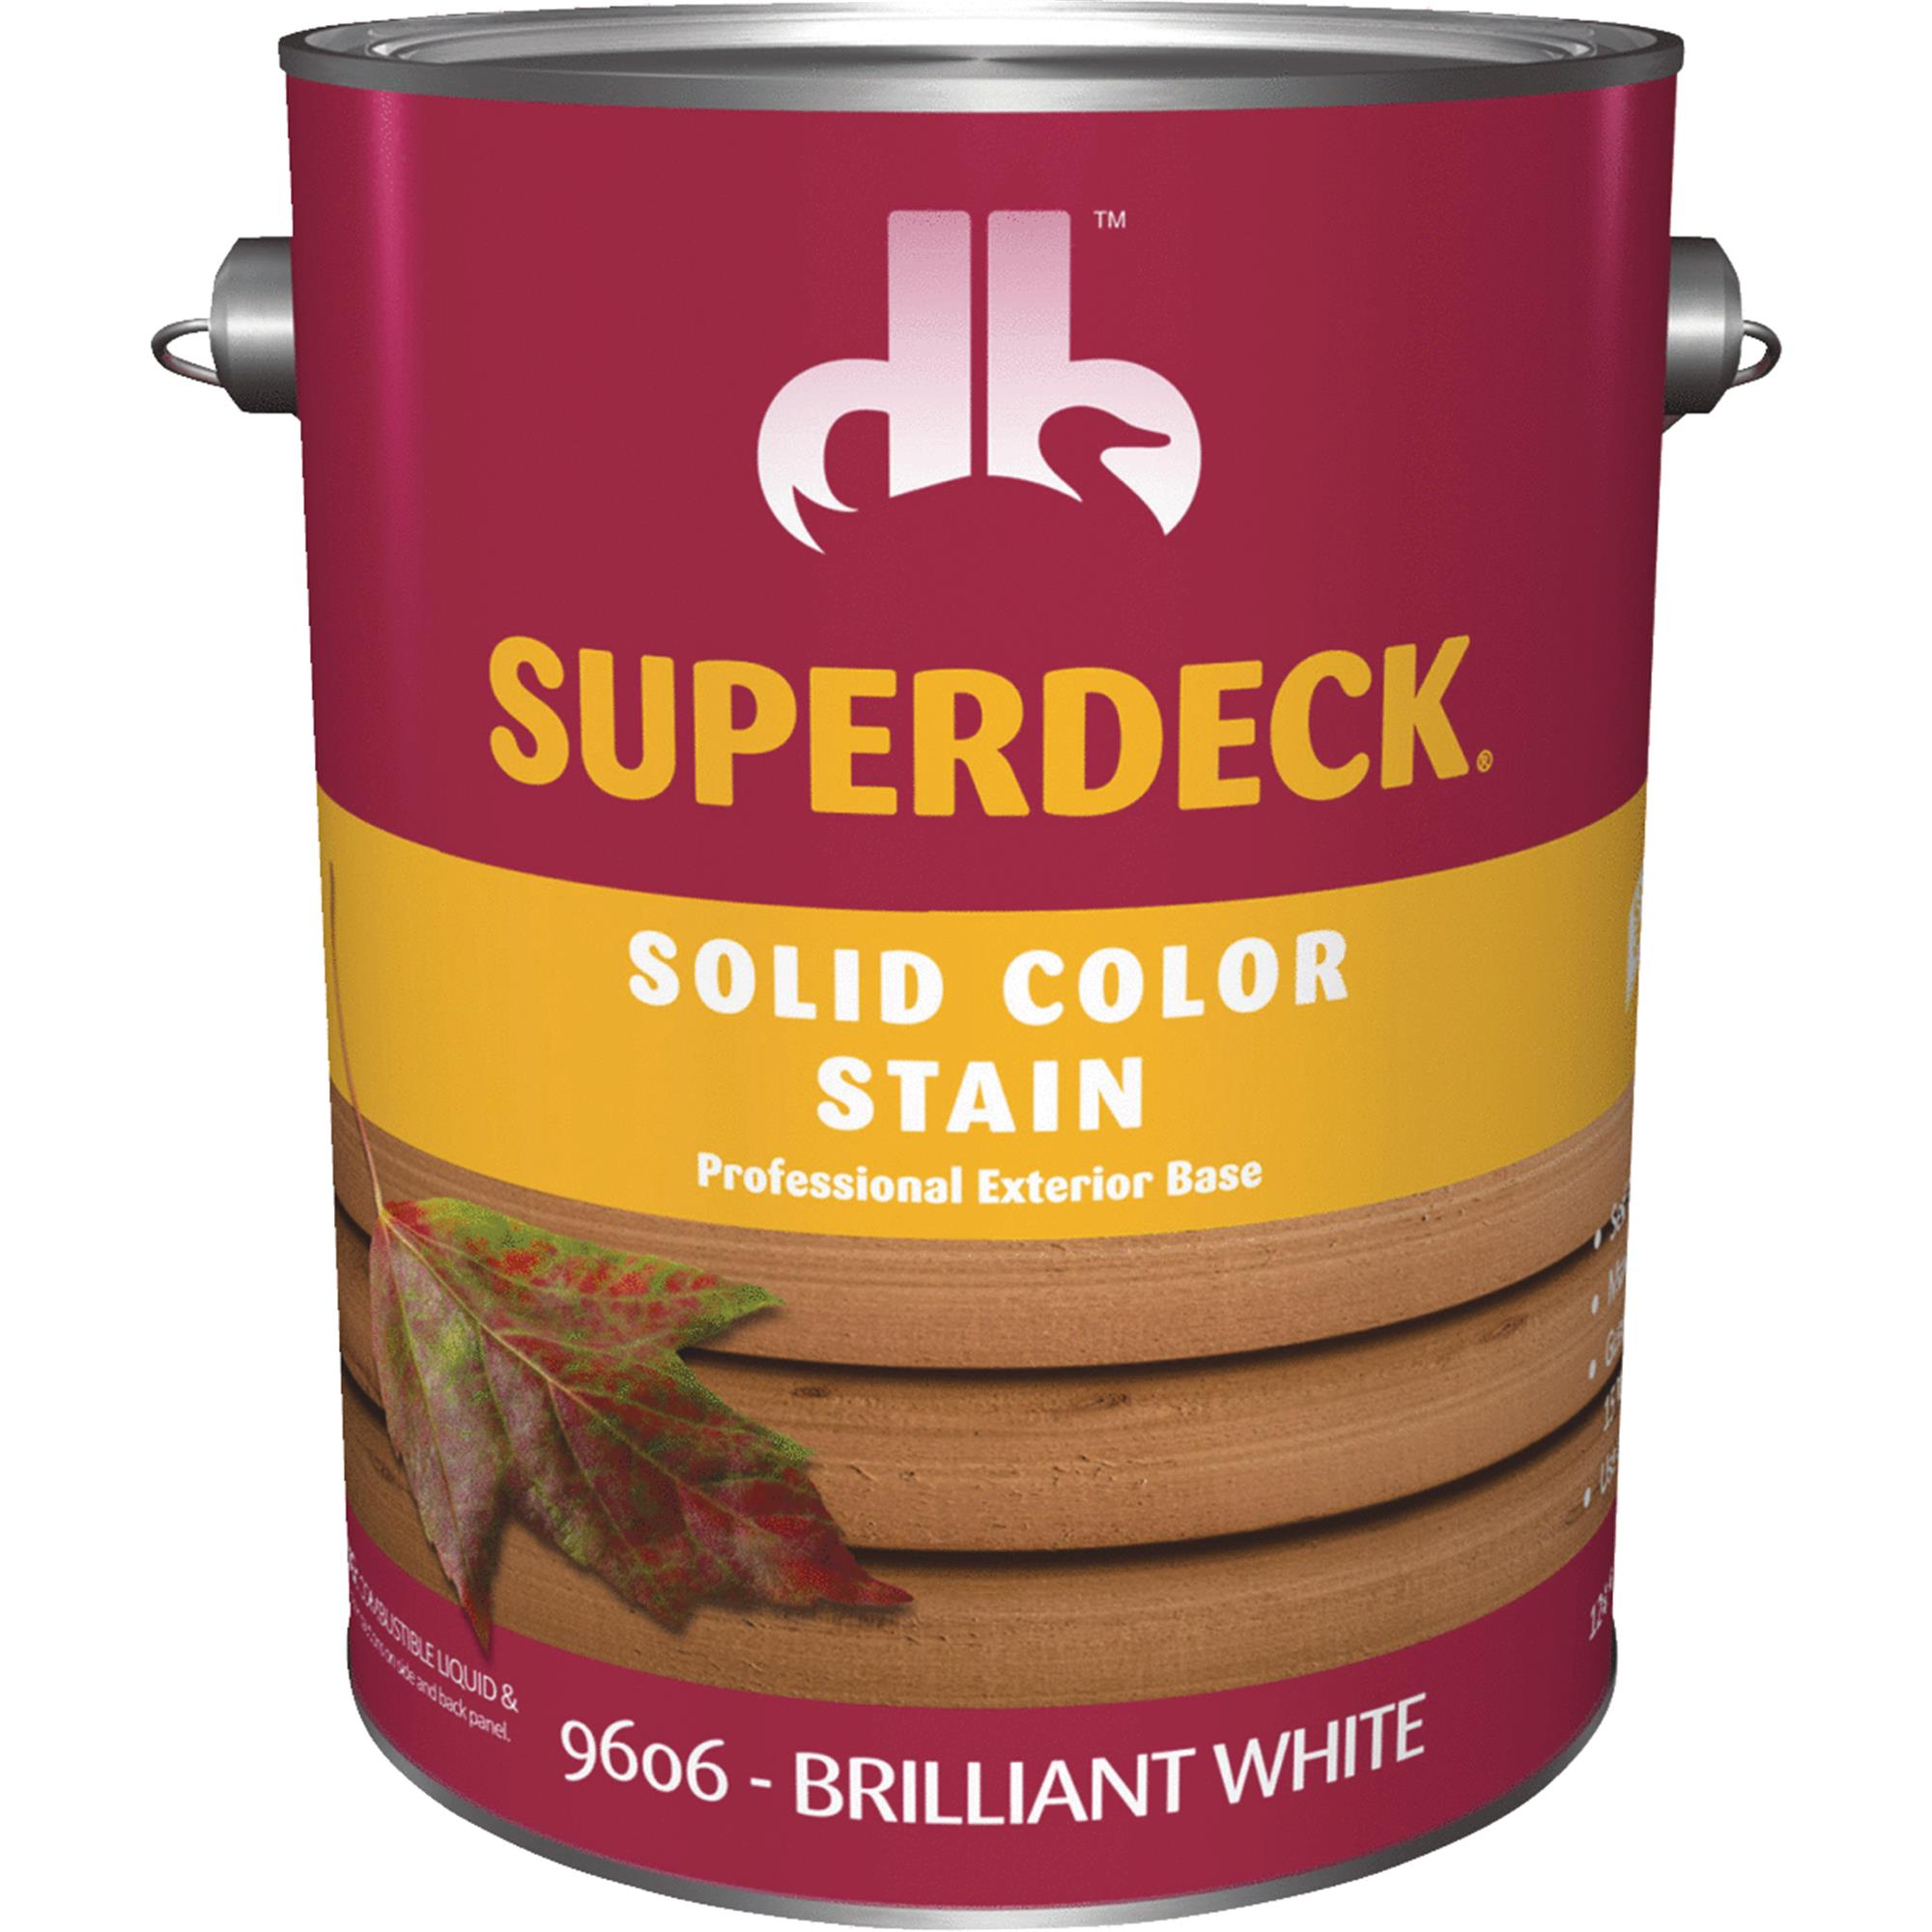 Duckback SUPERDECK Self Priming Solid Color Stain